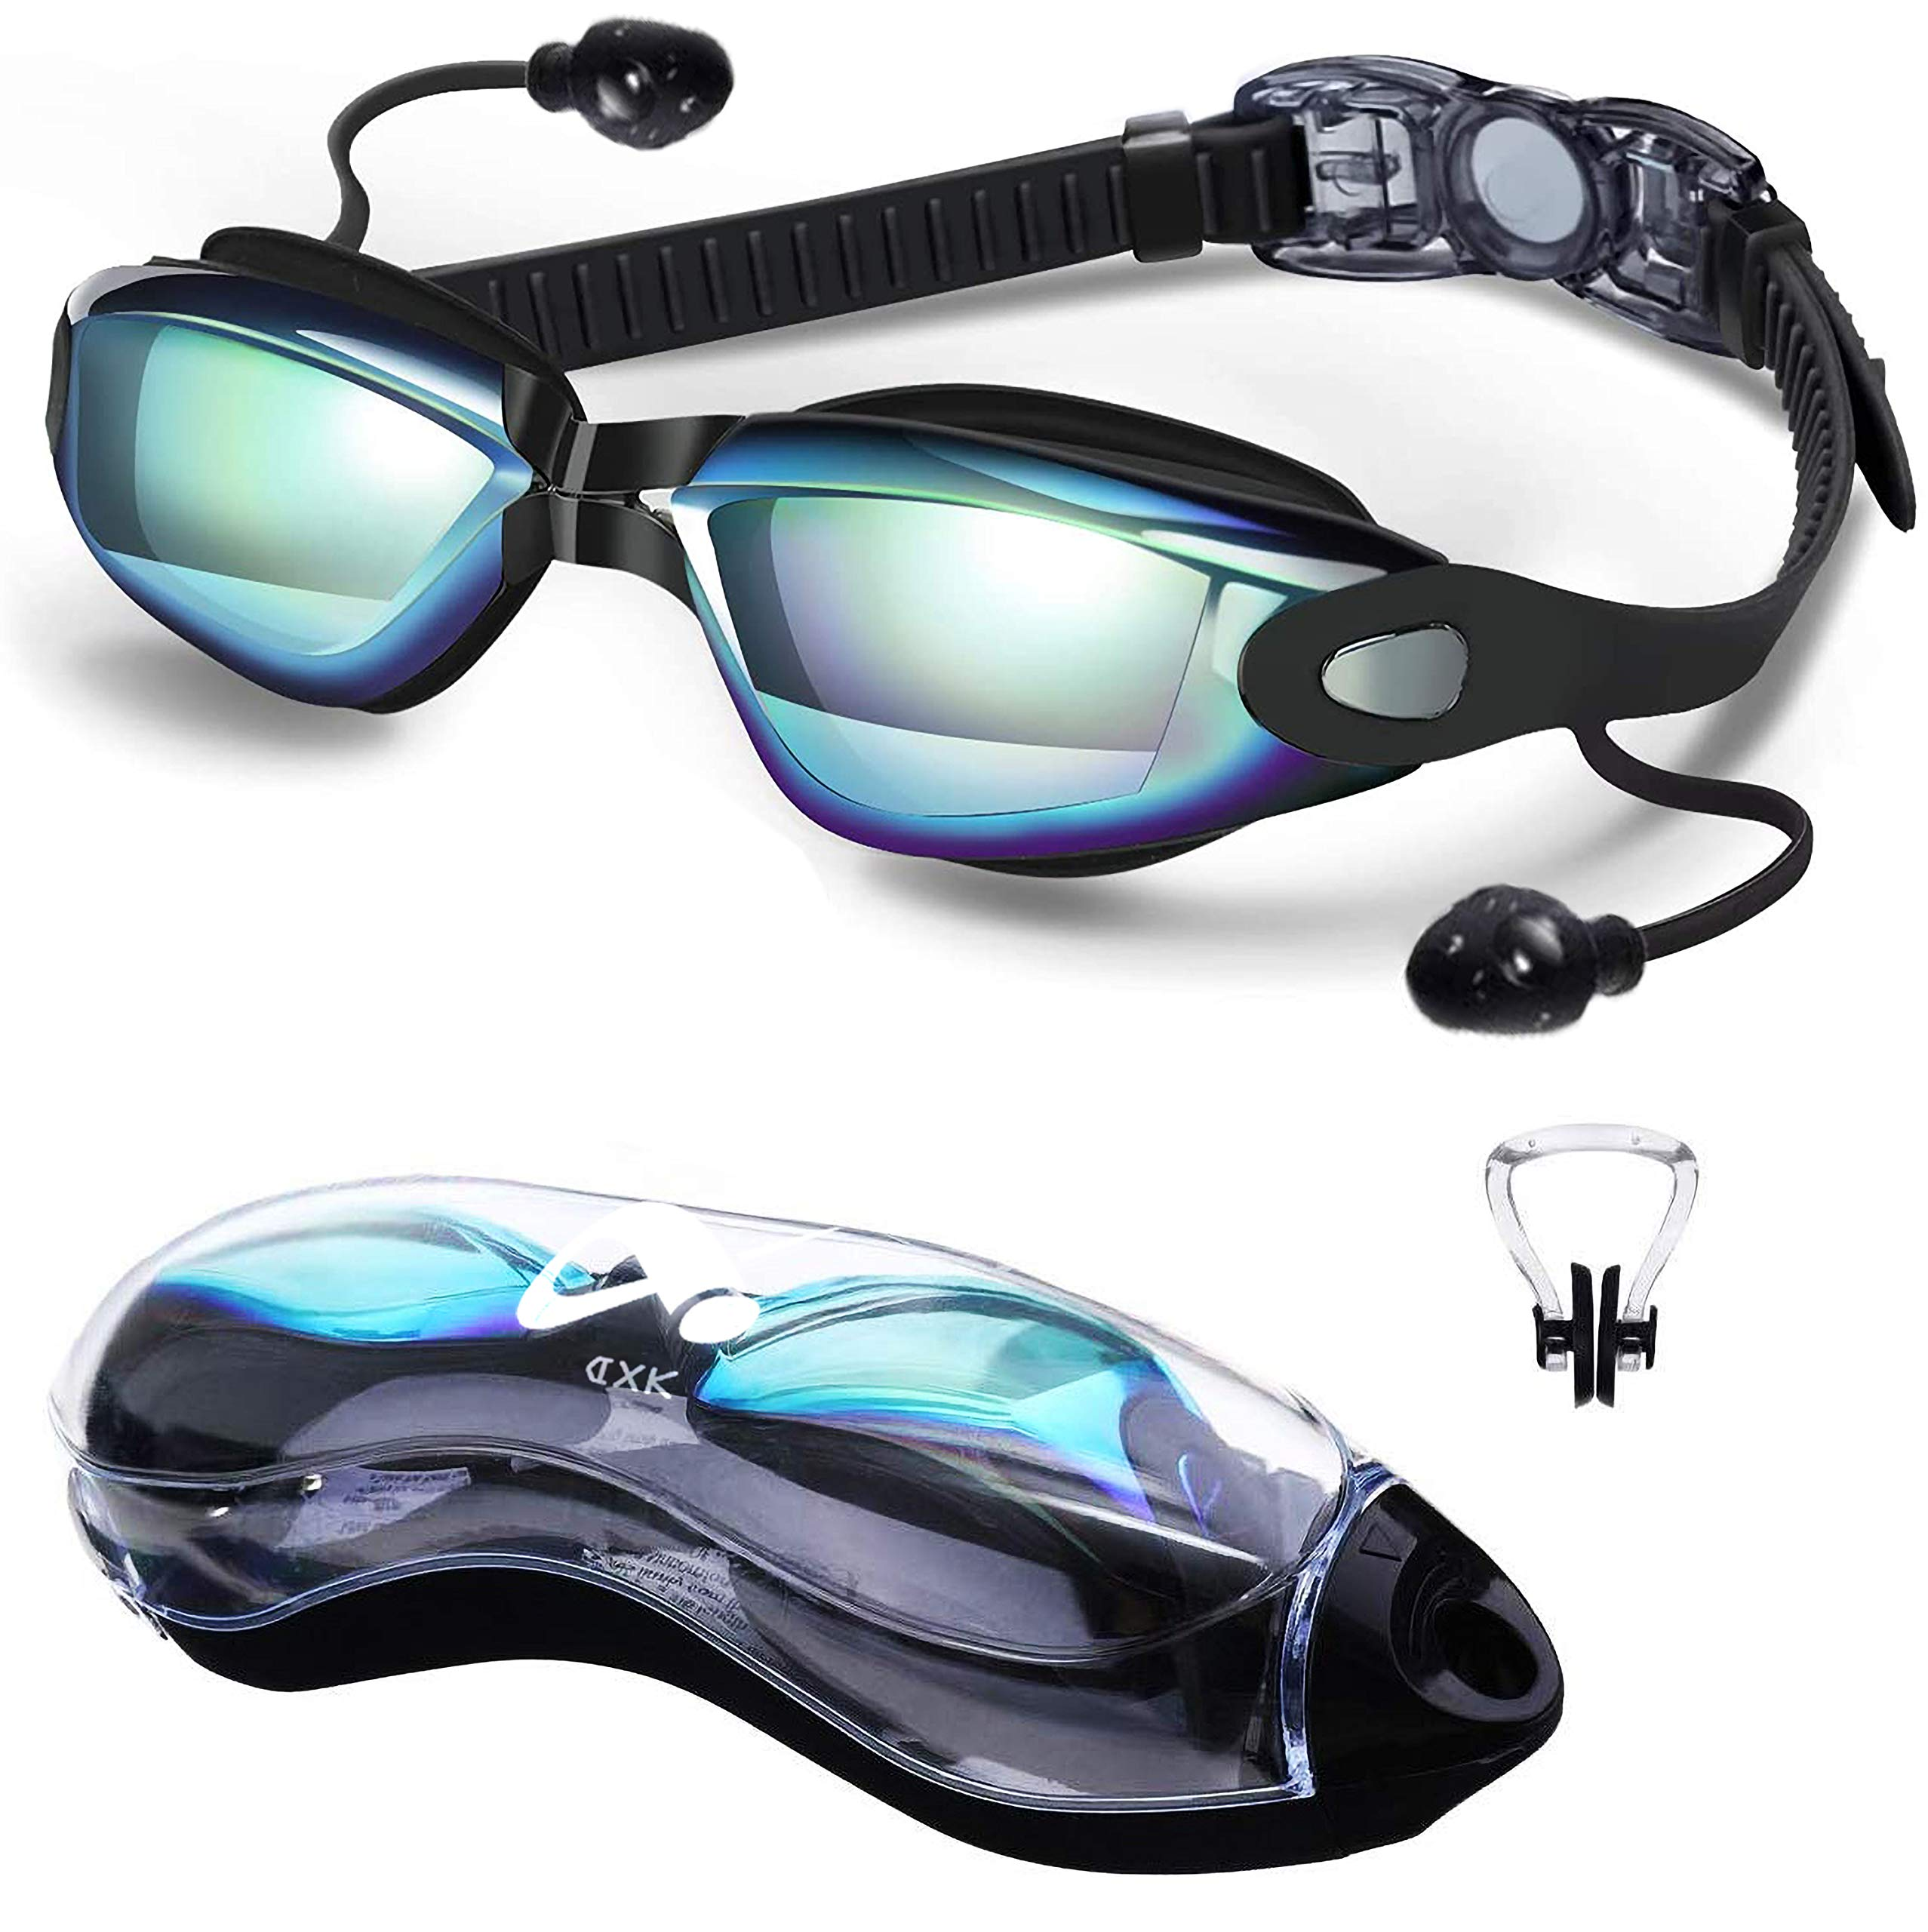 DXK Swimming Goggles, Mirrored Swim Goggles No Leaking Anti Fog UV Protection 180 Degree Vision with Free Protection Case and Soft Silicone Nose Bridgefor Adult Men Women Youth